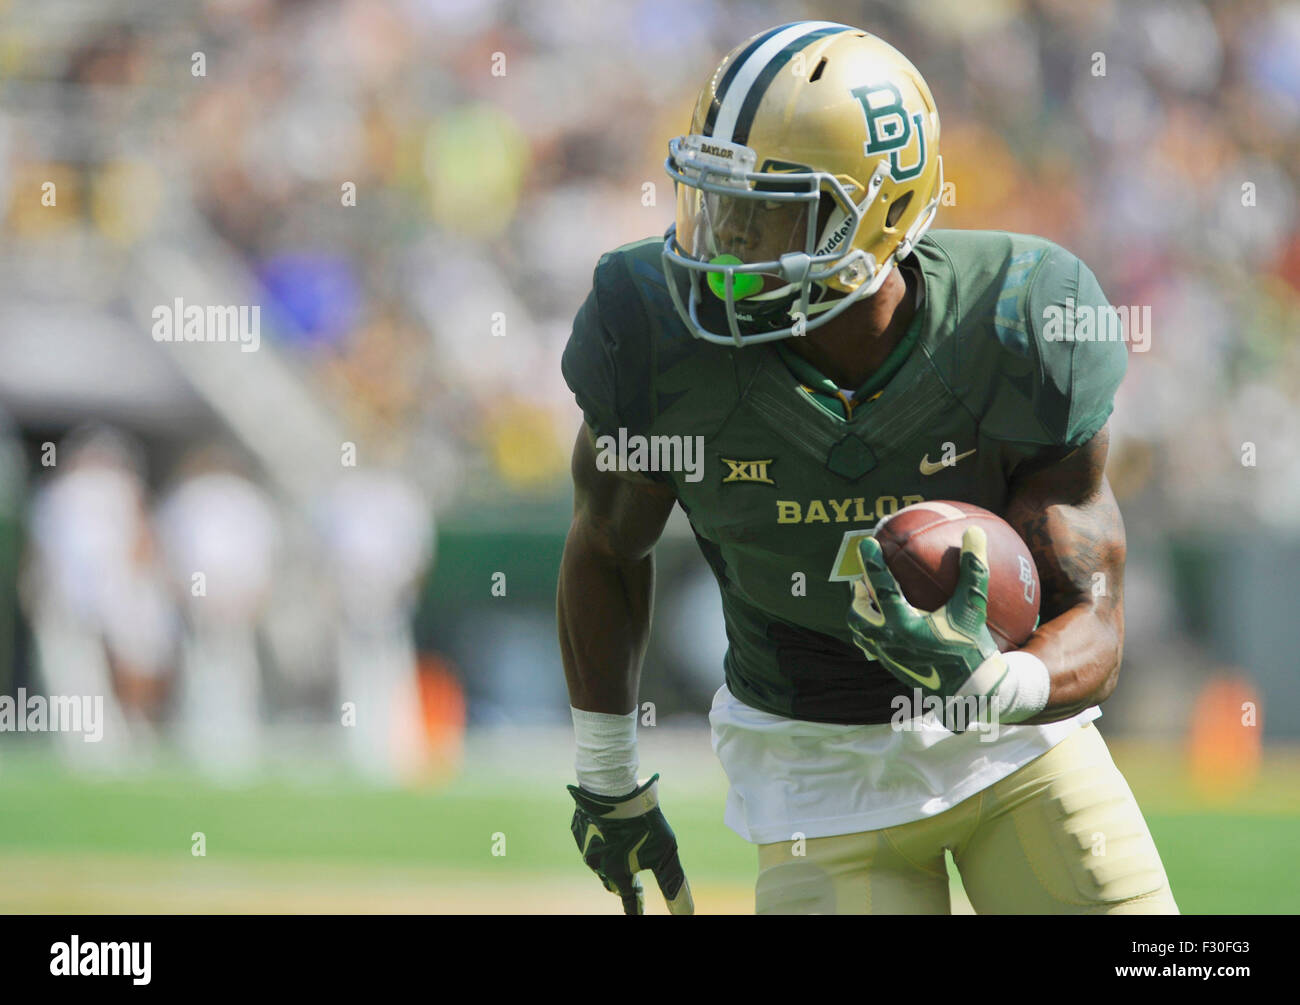 September 26, 2015: Baylor receiver Corey Coleman (1) runs up field during the first half of a NCAA college football Stock Photo